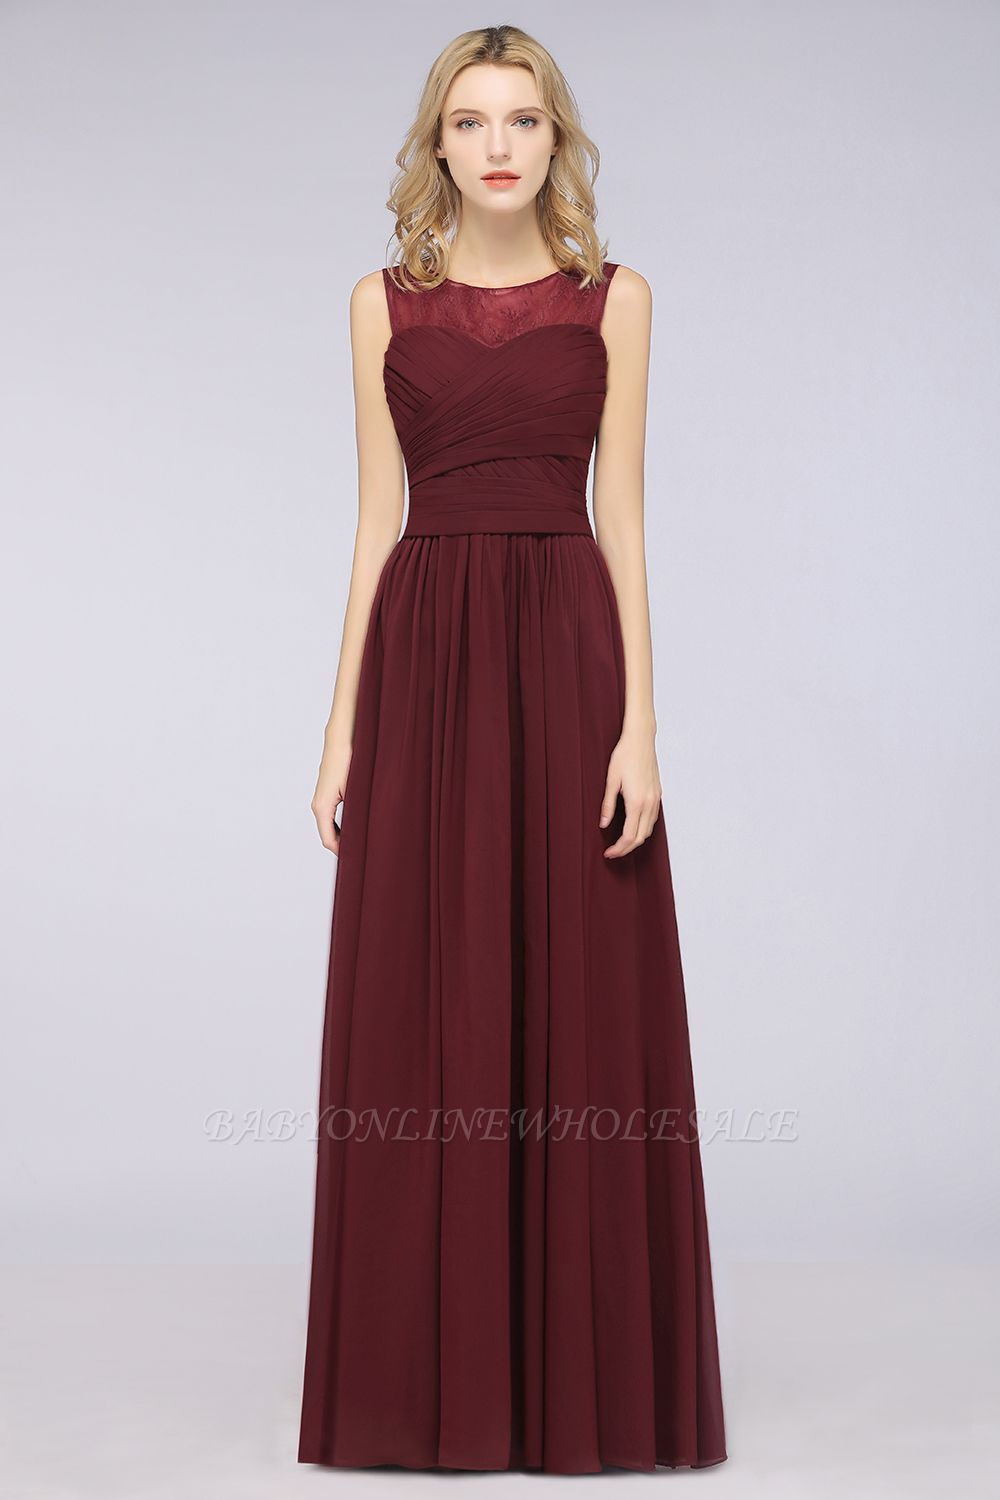 Chiffon A-Line Tulle Lace Scoop Sleeveless Long Bridesmaid Dress with Ruffle